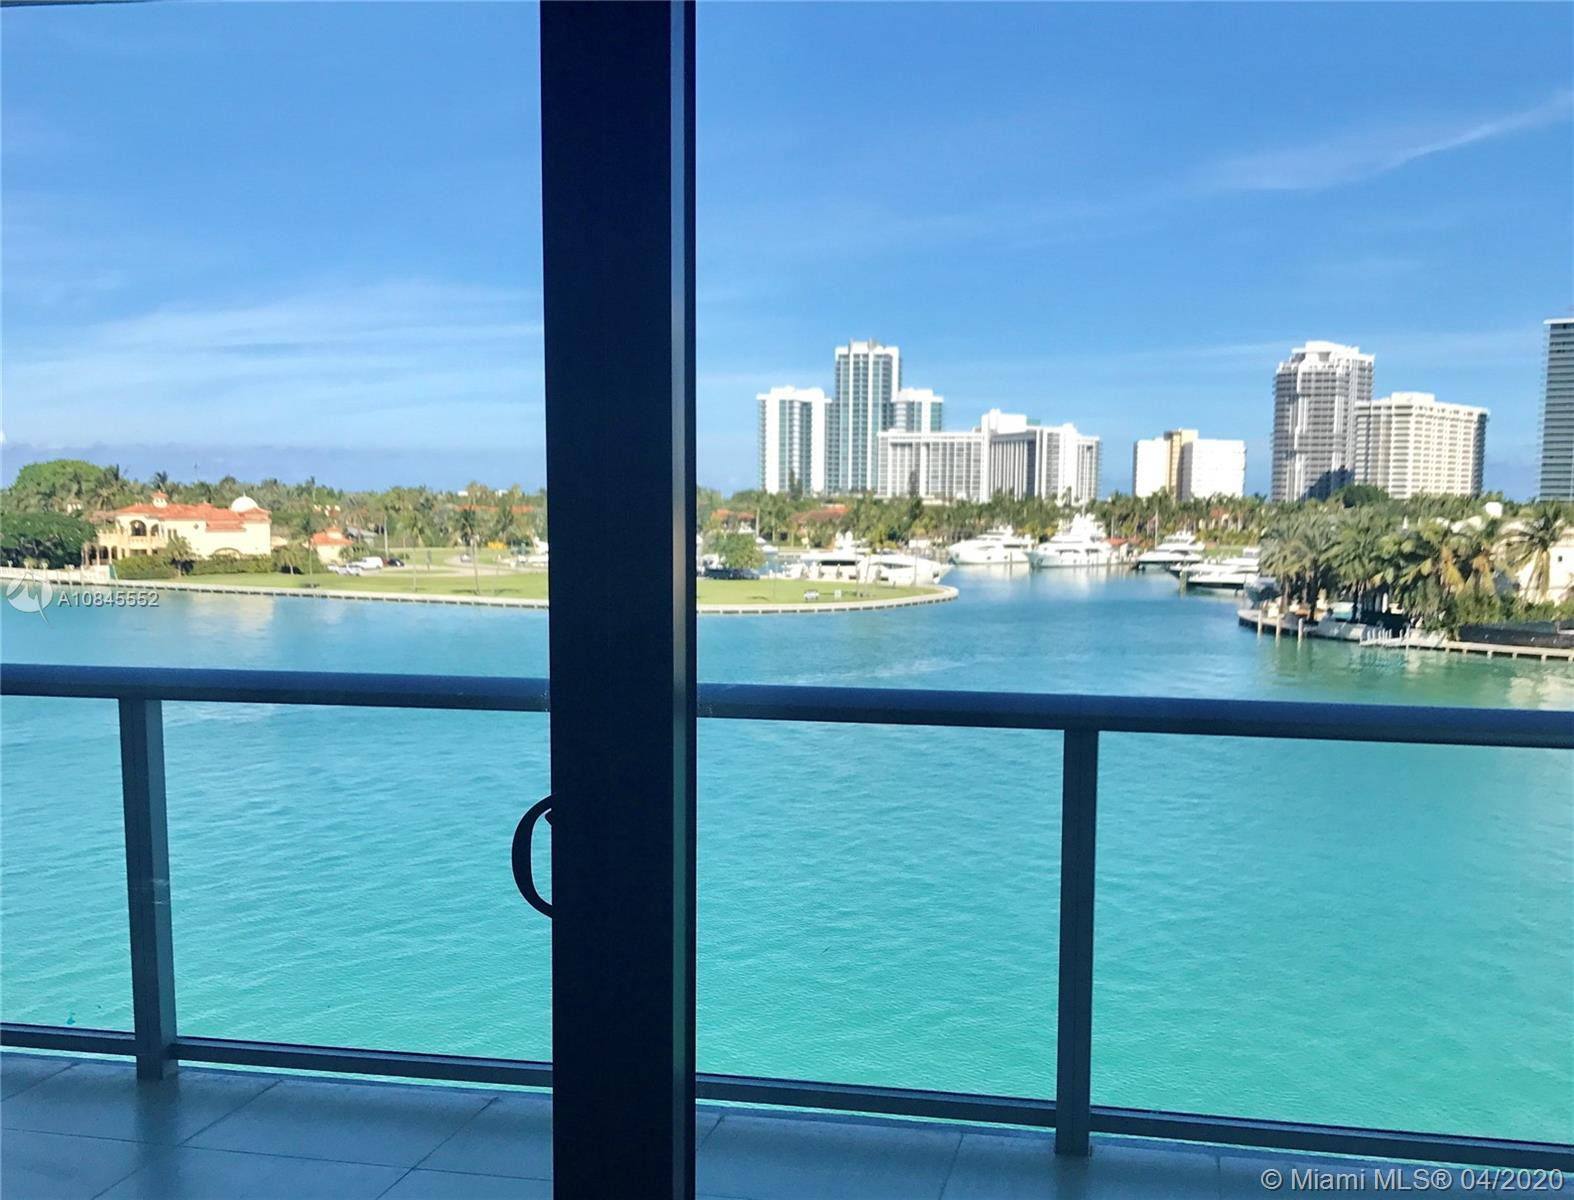 Sereno is more than a Residential experience, whit a breathtaking view of the ocean. 3 Bed/ 3.5 Bath unit nestled in the exclusive bay Harbor Island, unit SqFt 1,643, comes with 2 parkings, private elevator fantastic amenities. Just minutes from Bal Harbor shop and the beach.